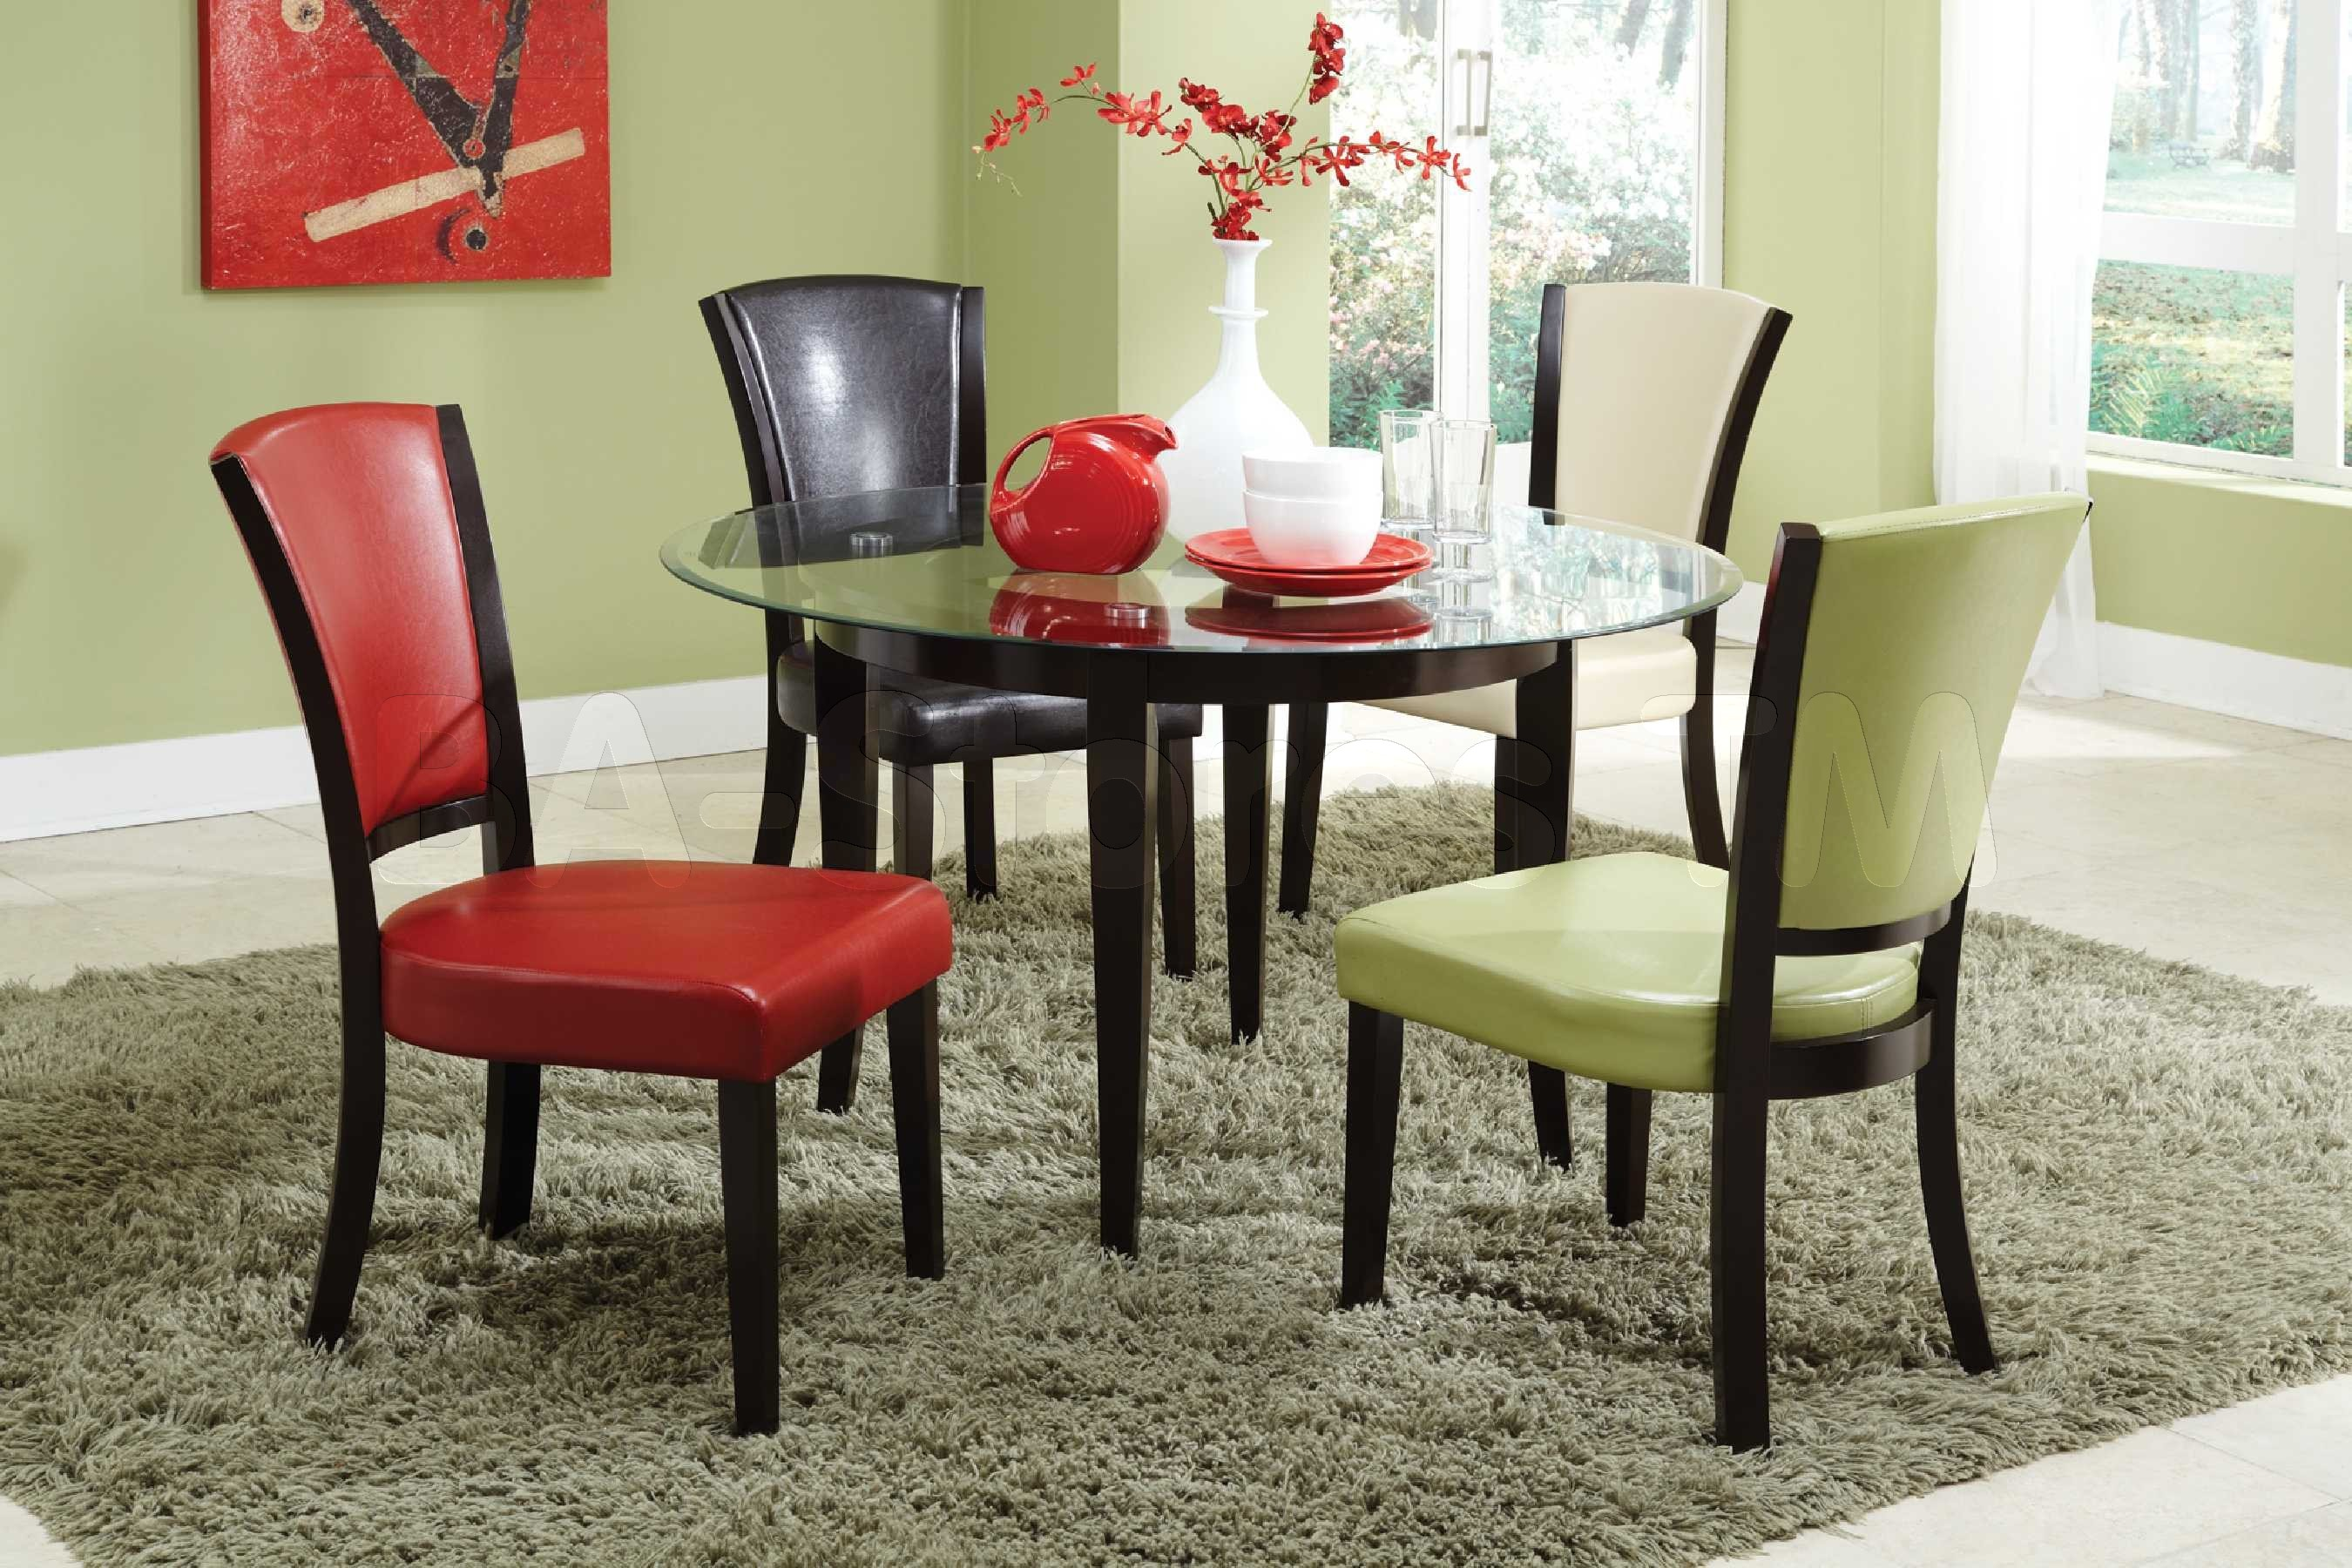 Colorful Chairs To Your Dining Room (Image 3 of 10)